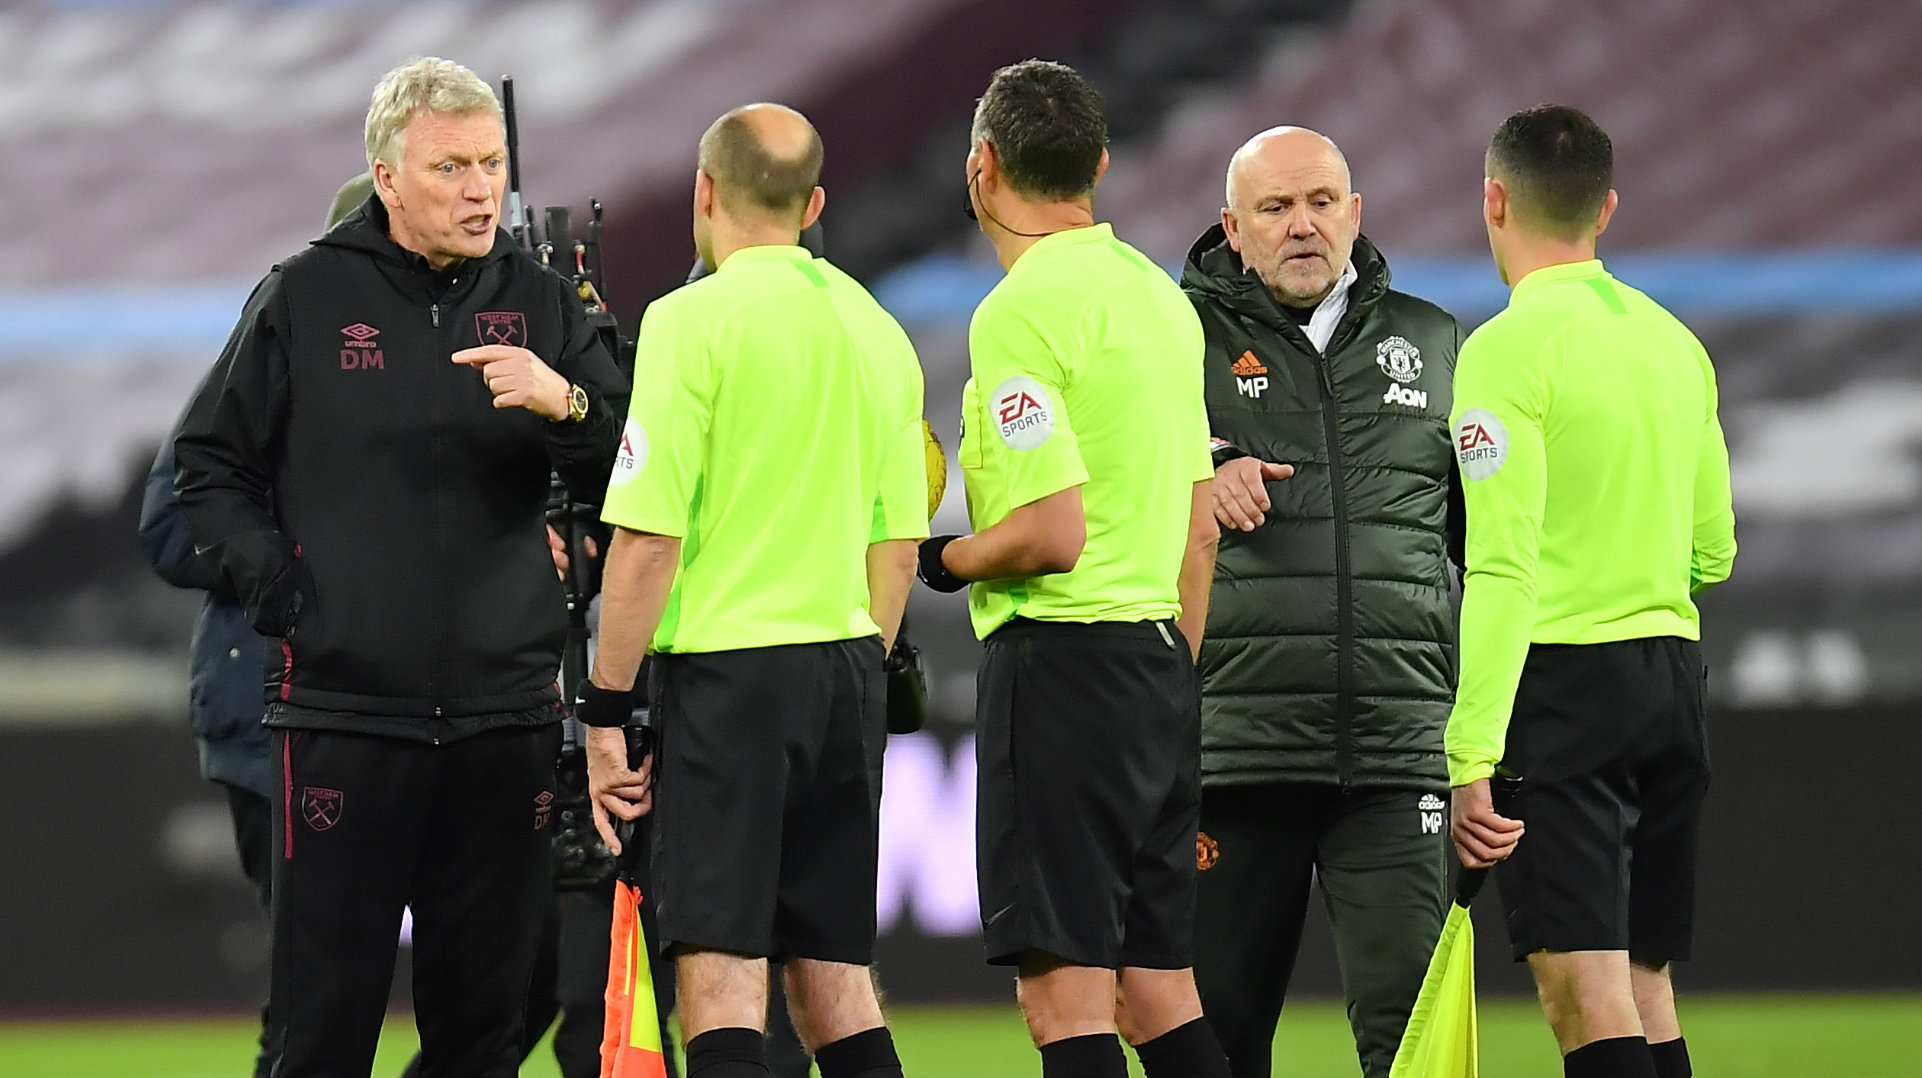 'The ball went over my head!' - West Ham boss Moyes claims ...